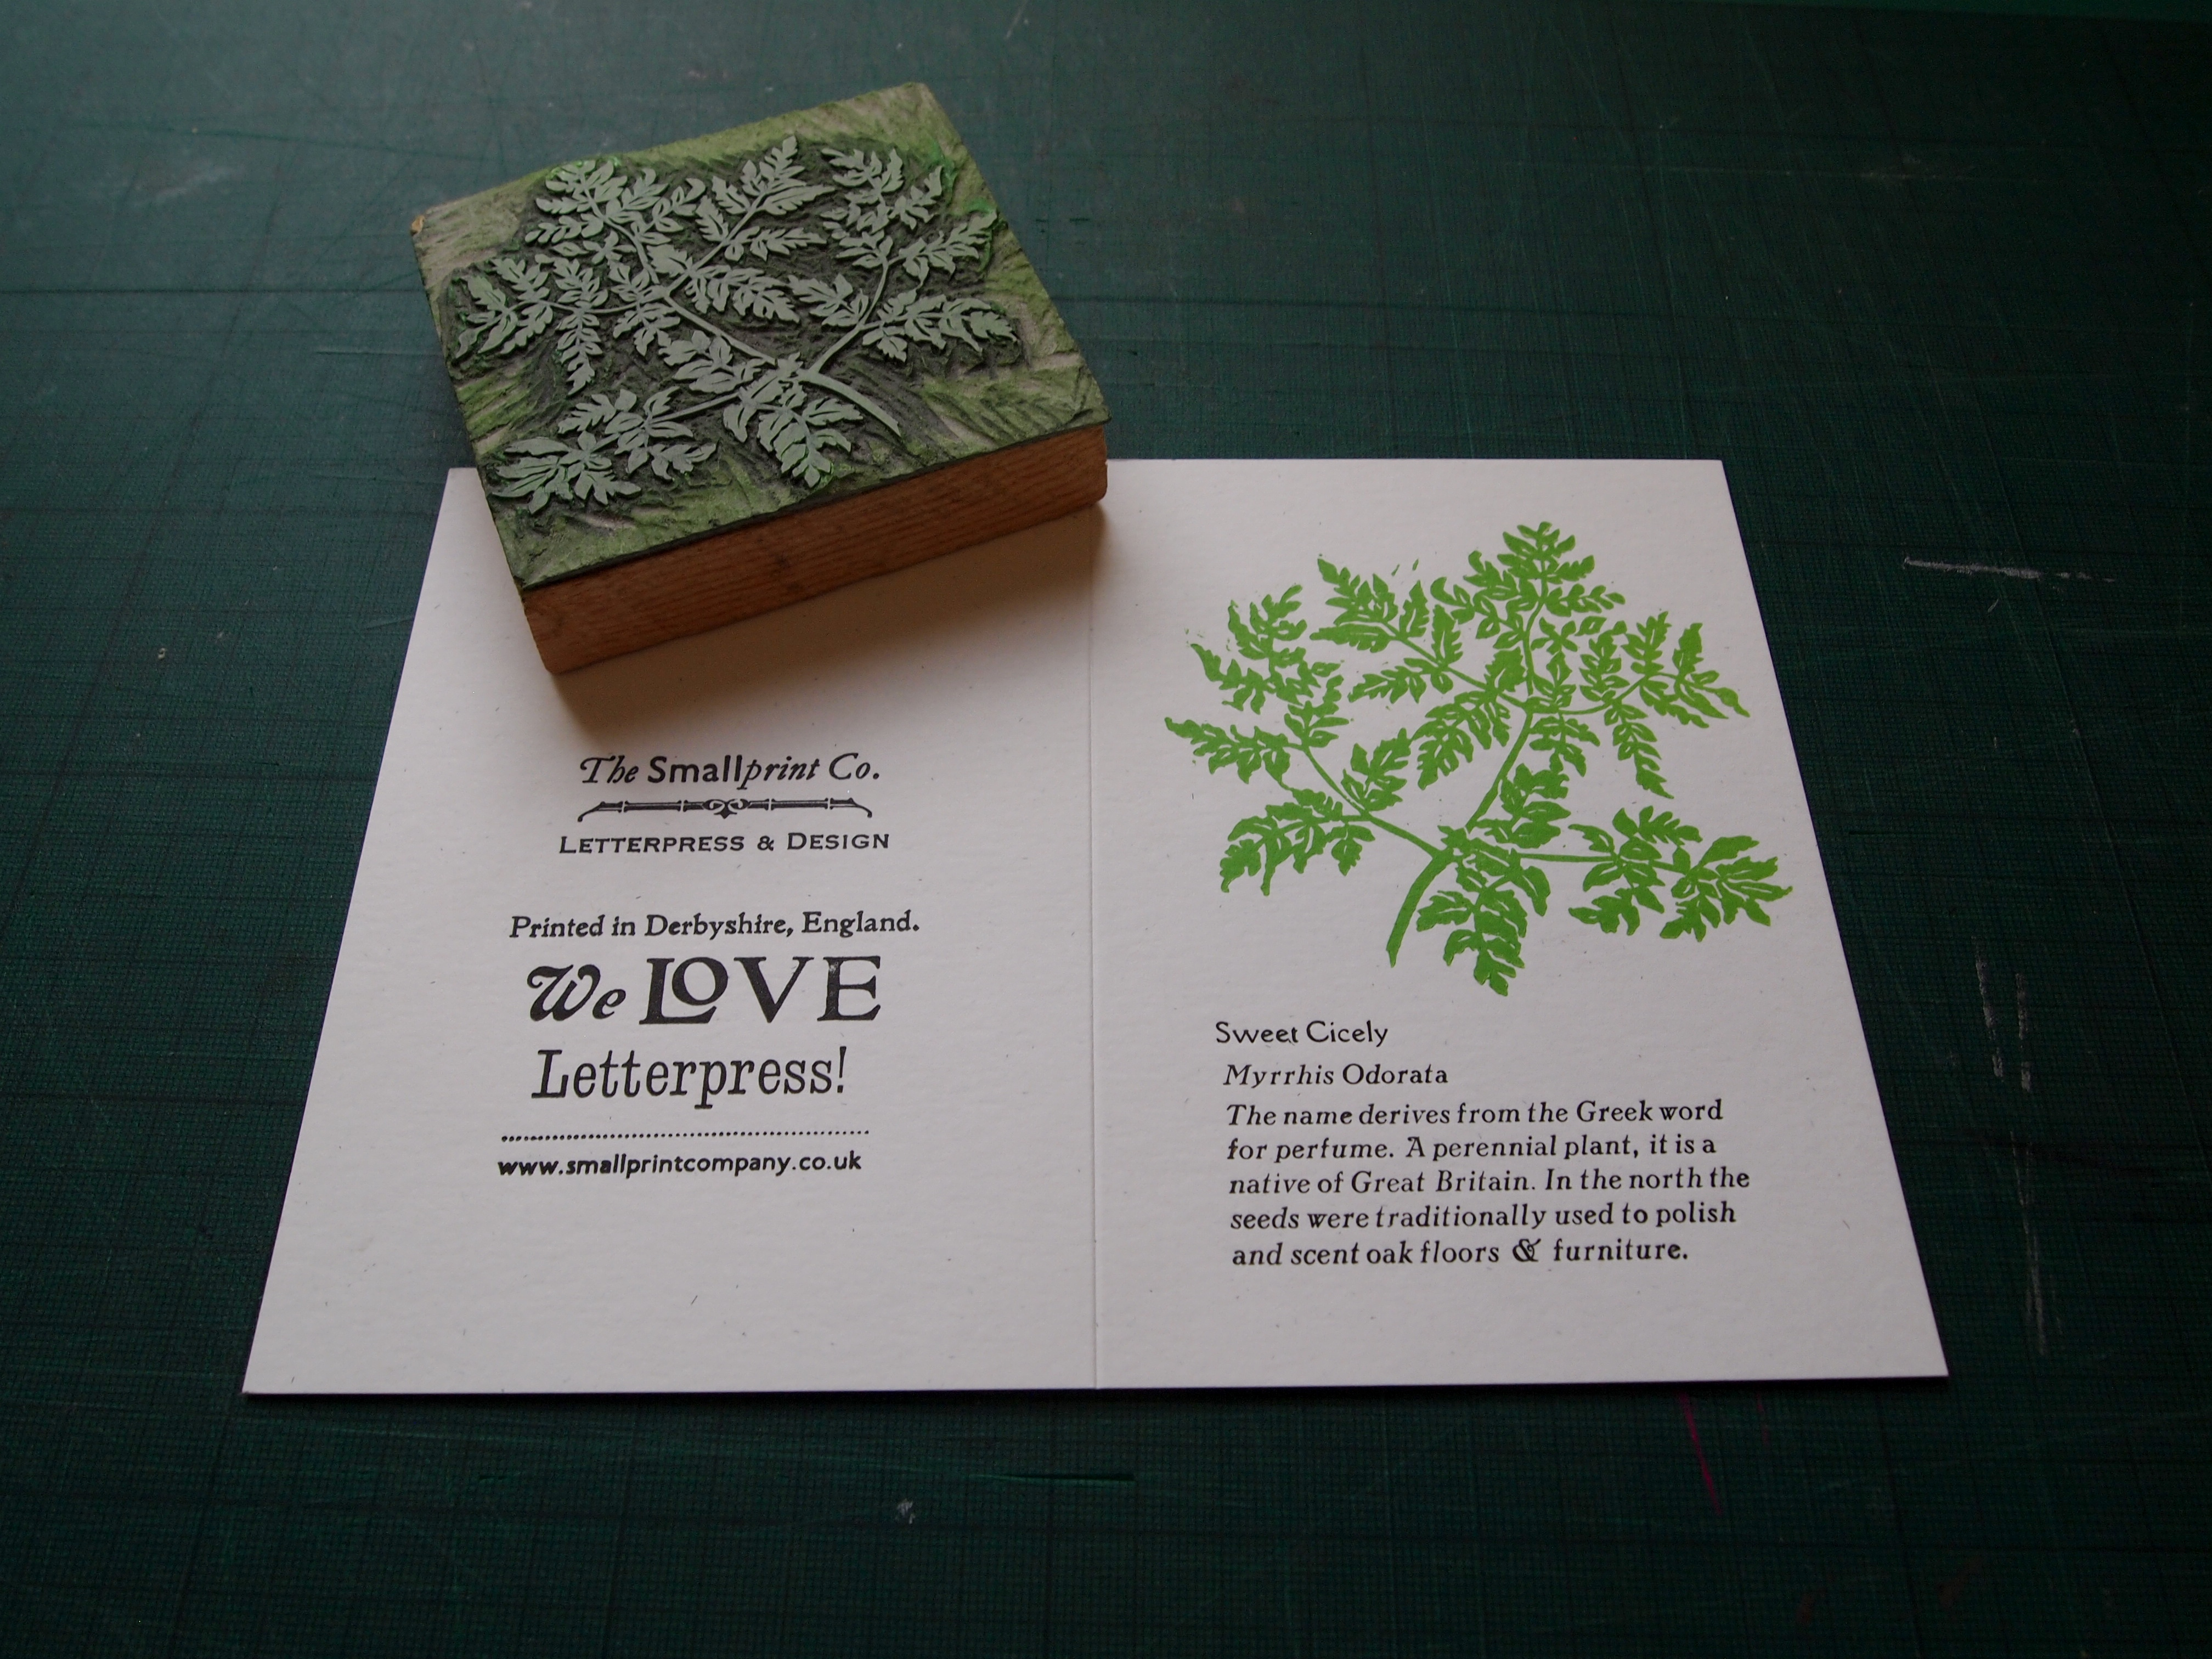 Sweet Cicely with lino block